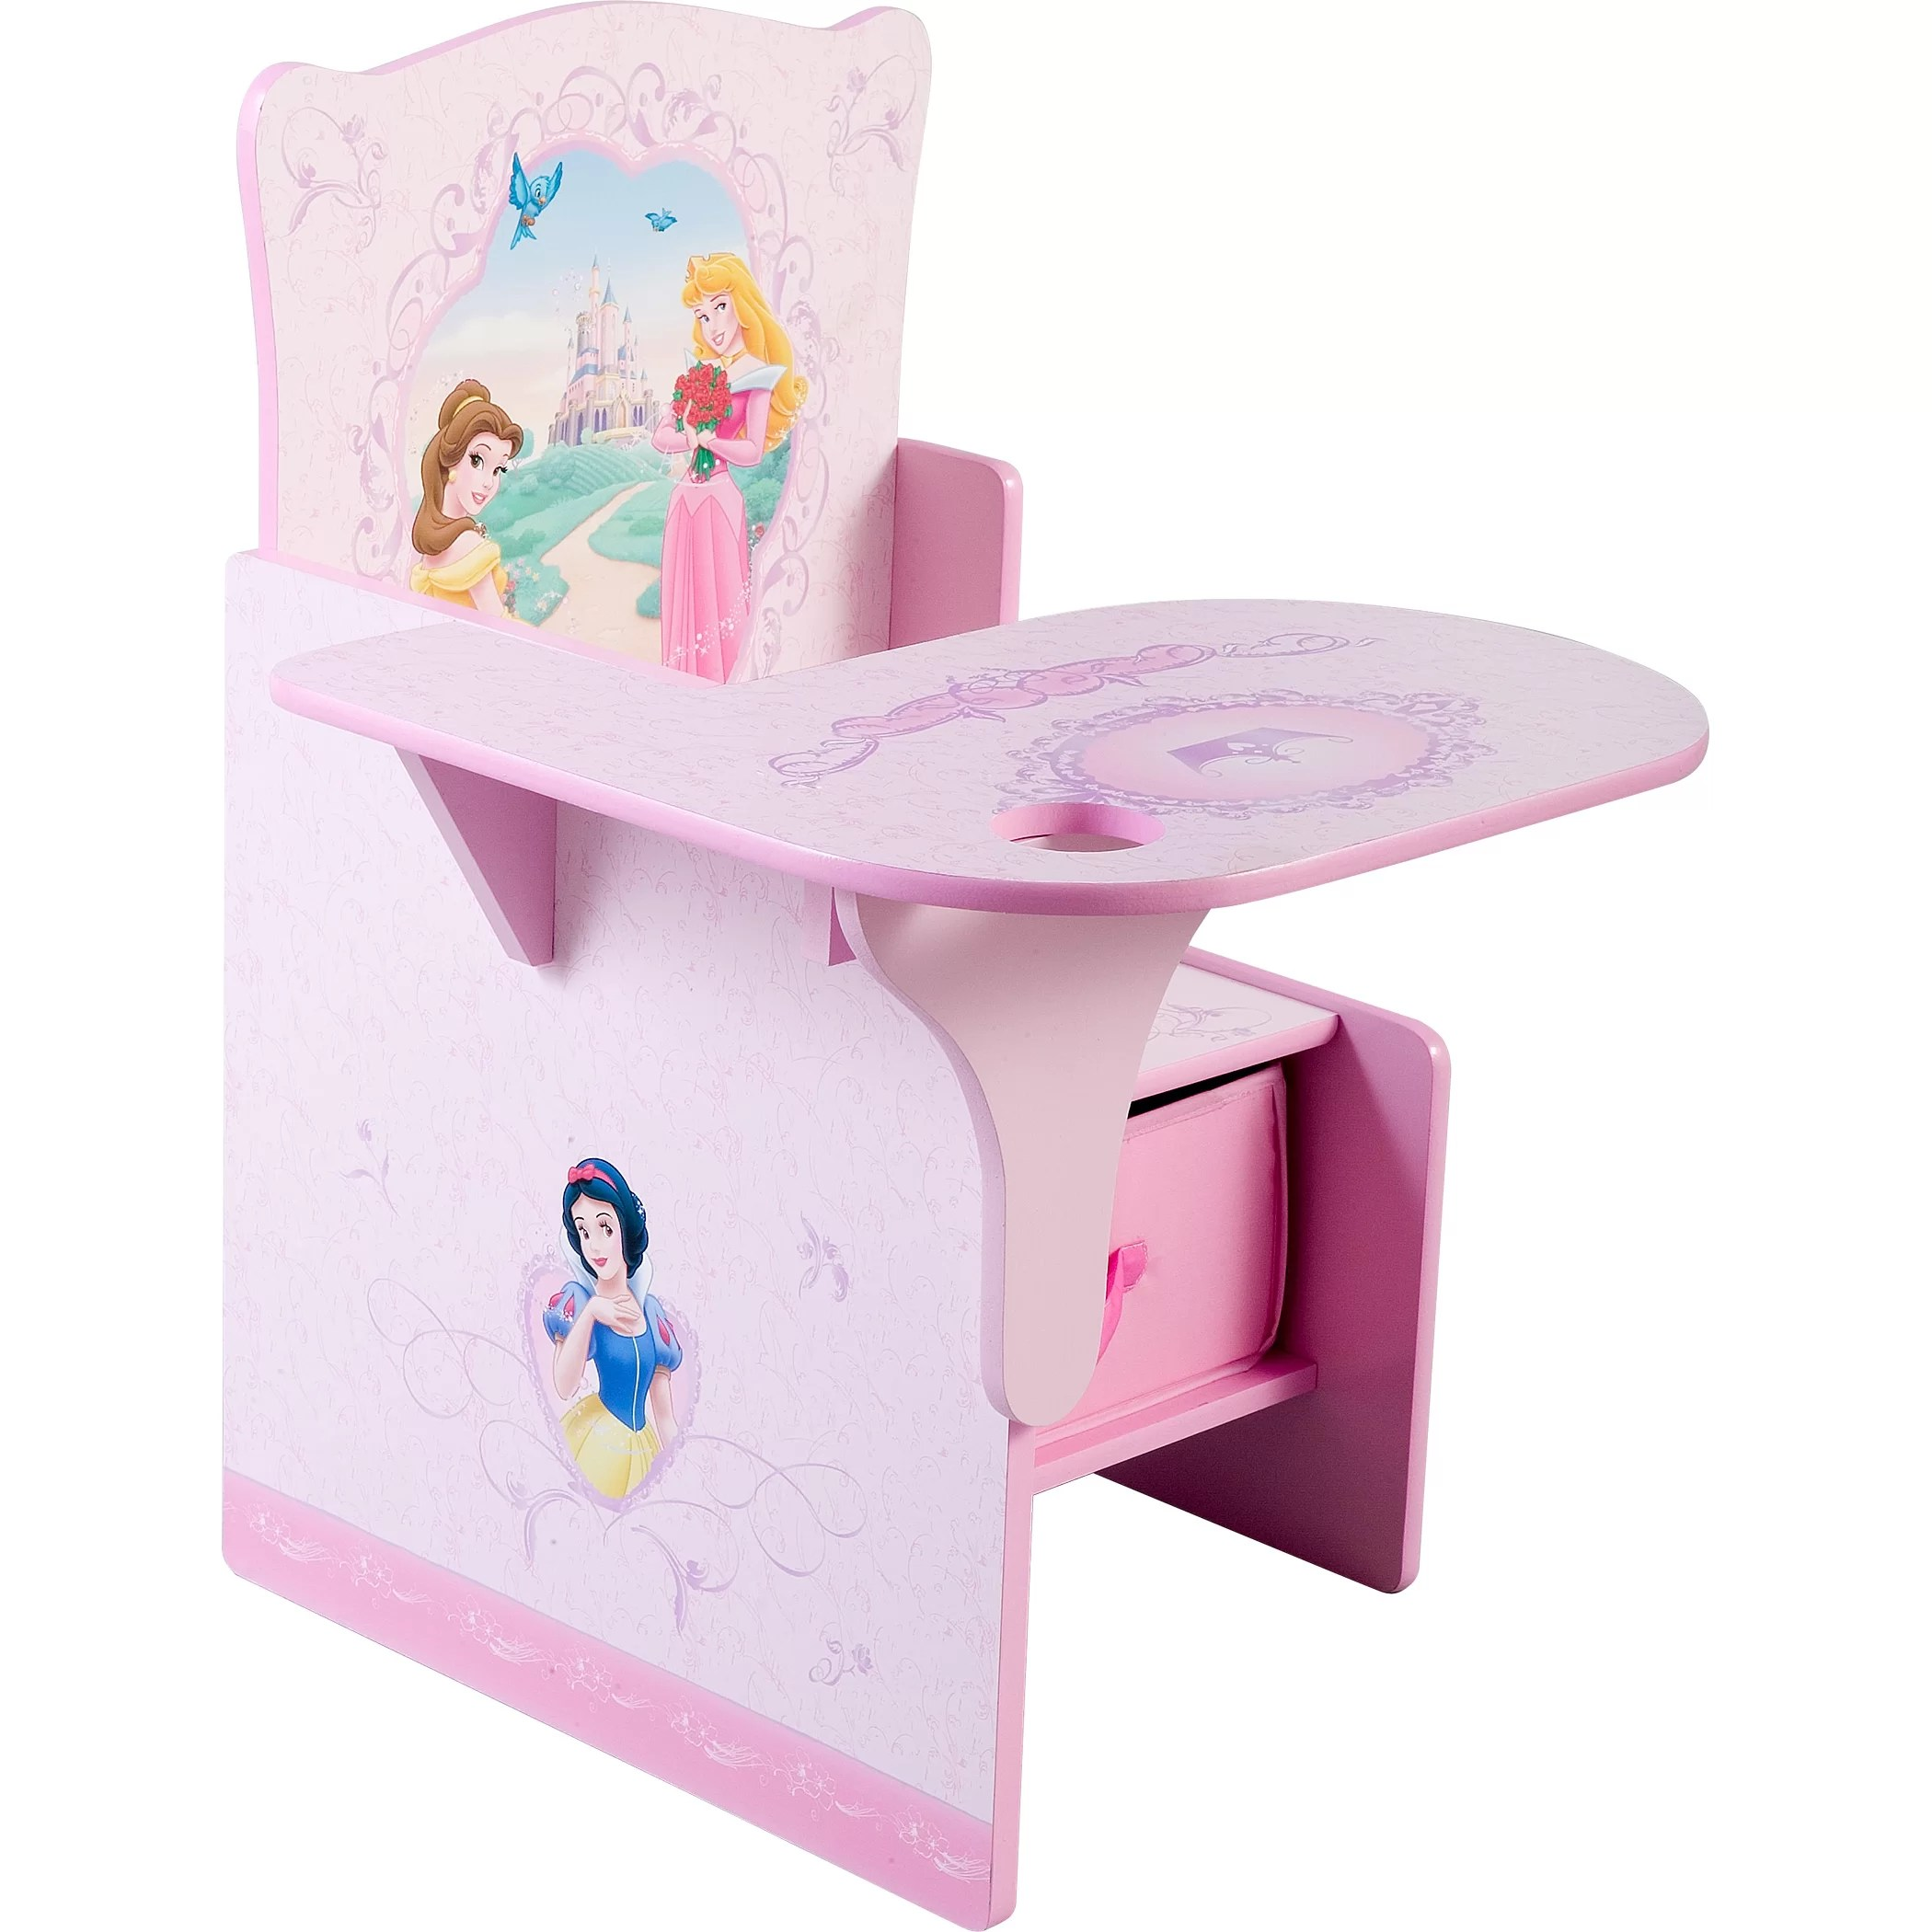 Princess Chairs For Toddlers Delta Children Disney Princess Kids Novelty Chair With